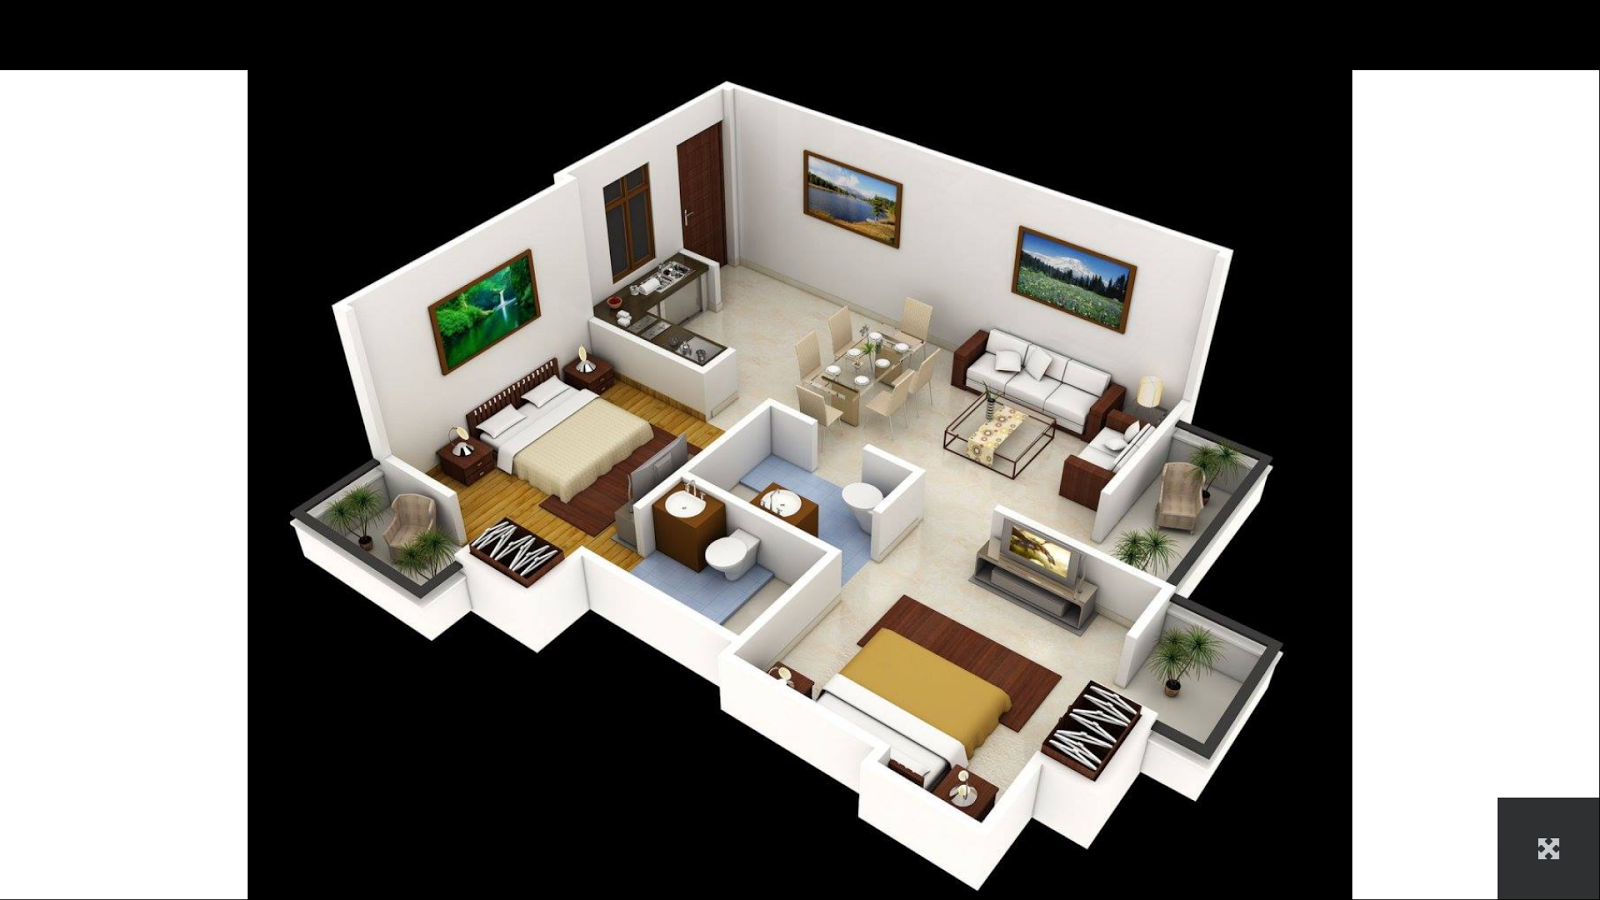 3d House Plans 3d house plans screenshot 3d House Plans Screenshot